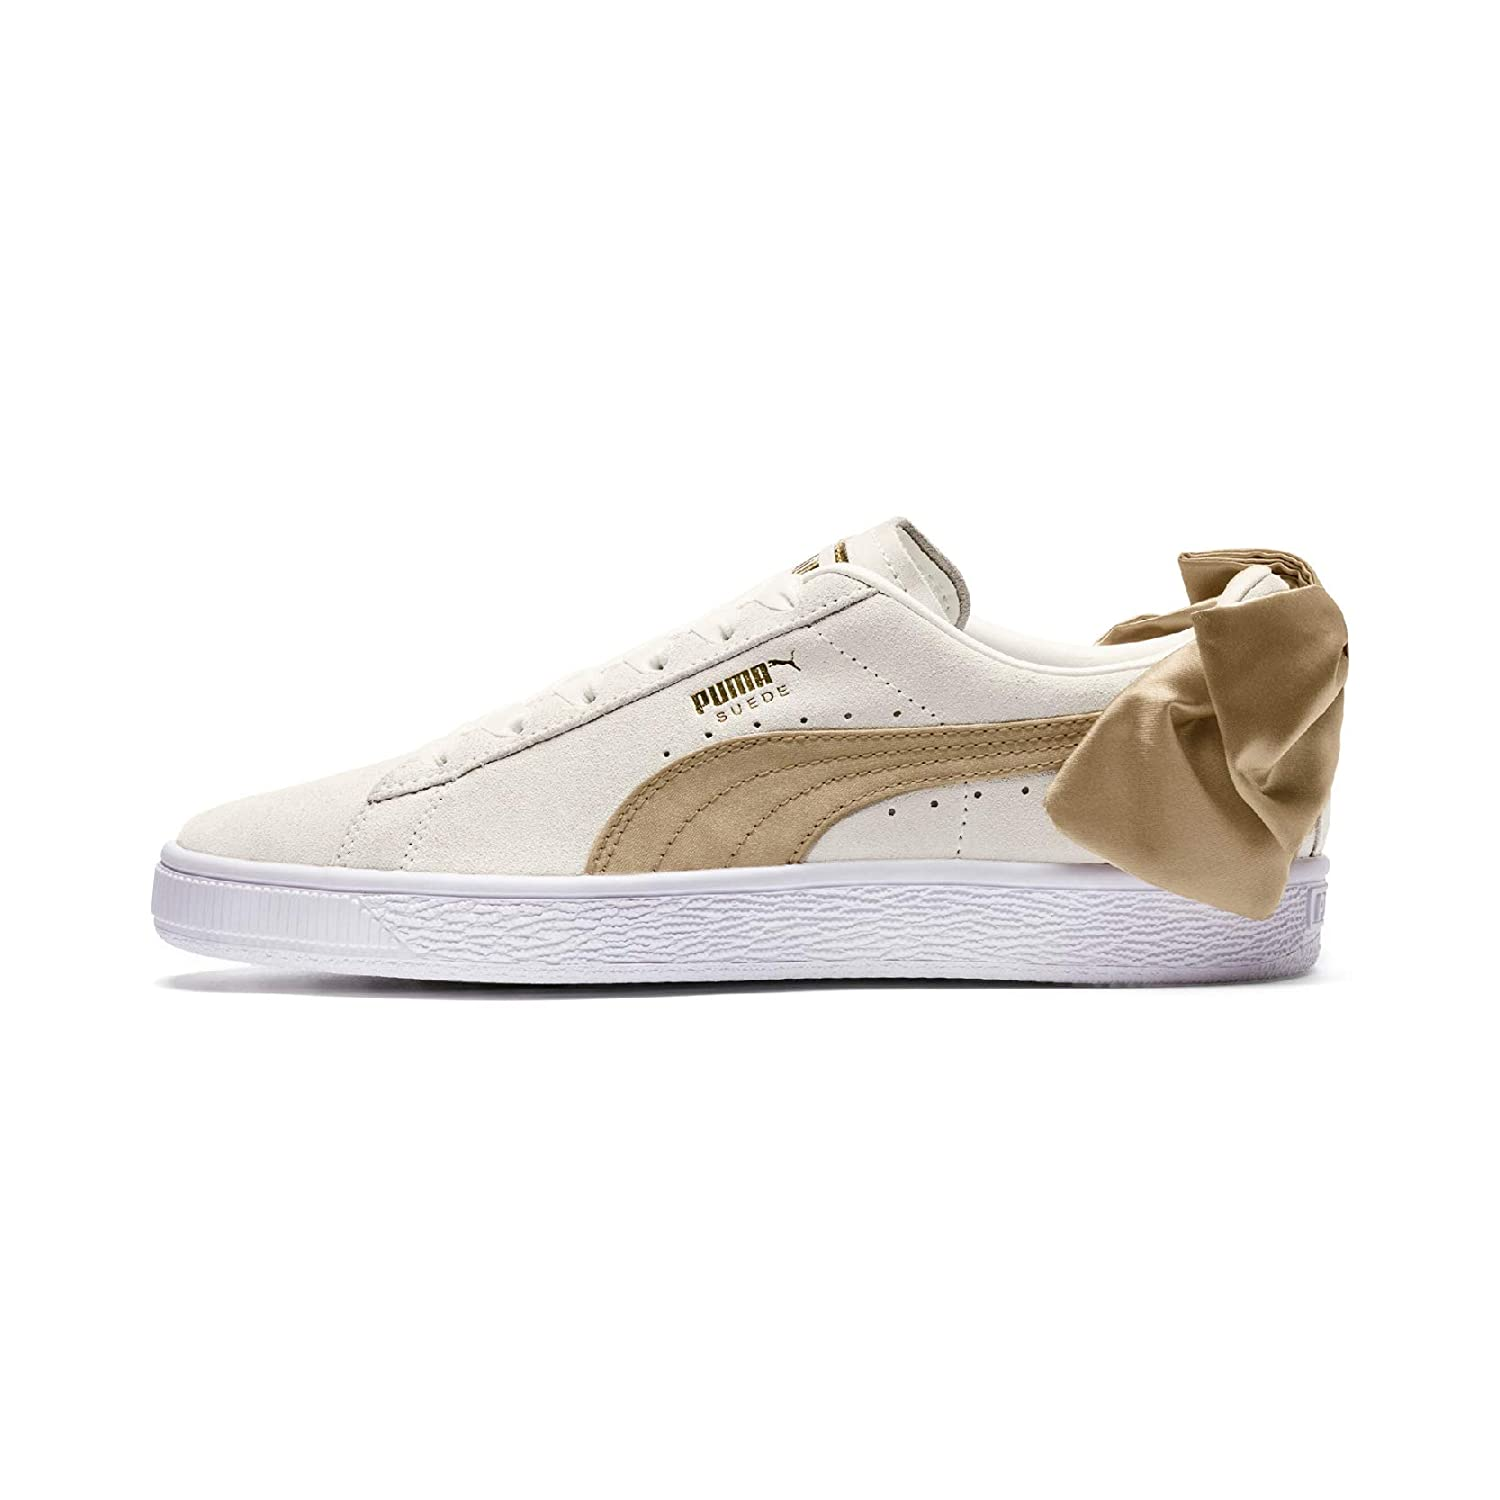 Puma Women's Off White Leather Rubber Suede Bow Varsity WN's